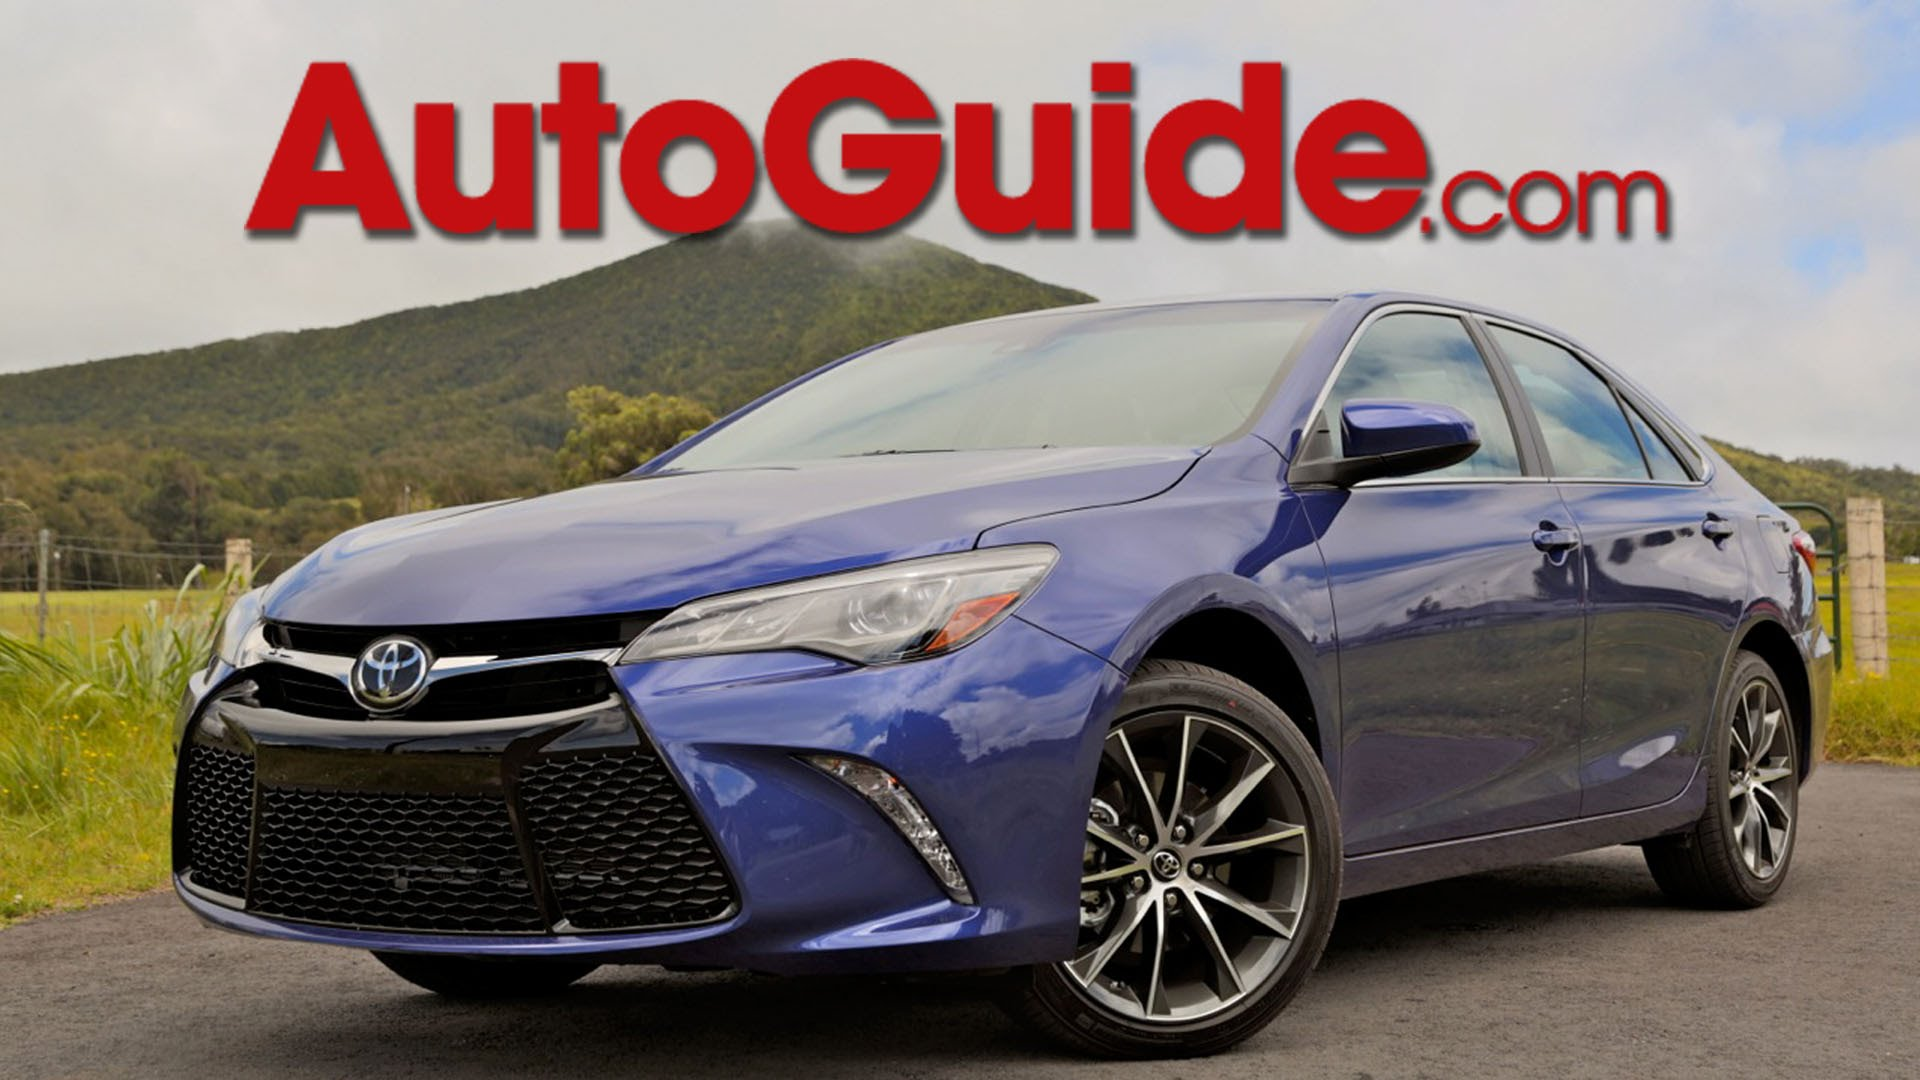 2015 Toyota CAMRY Car Review Video Texas